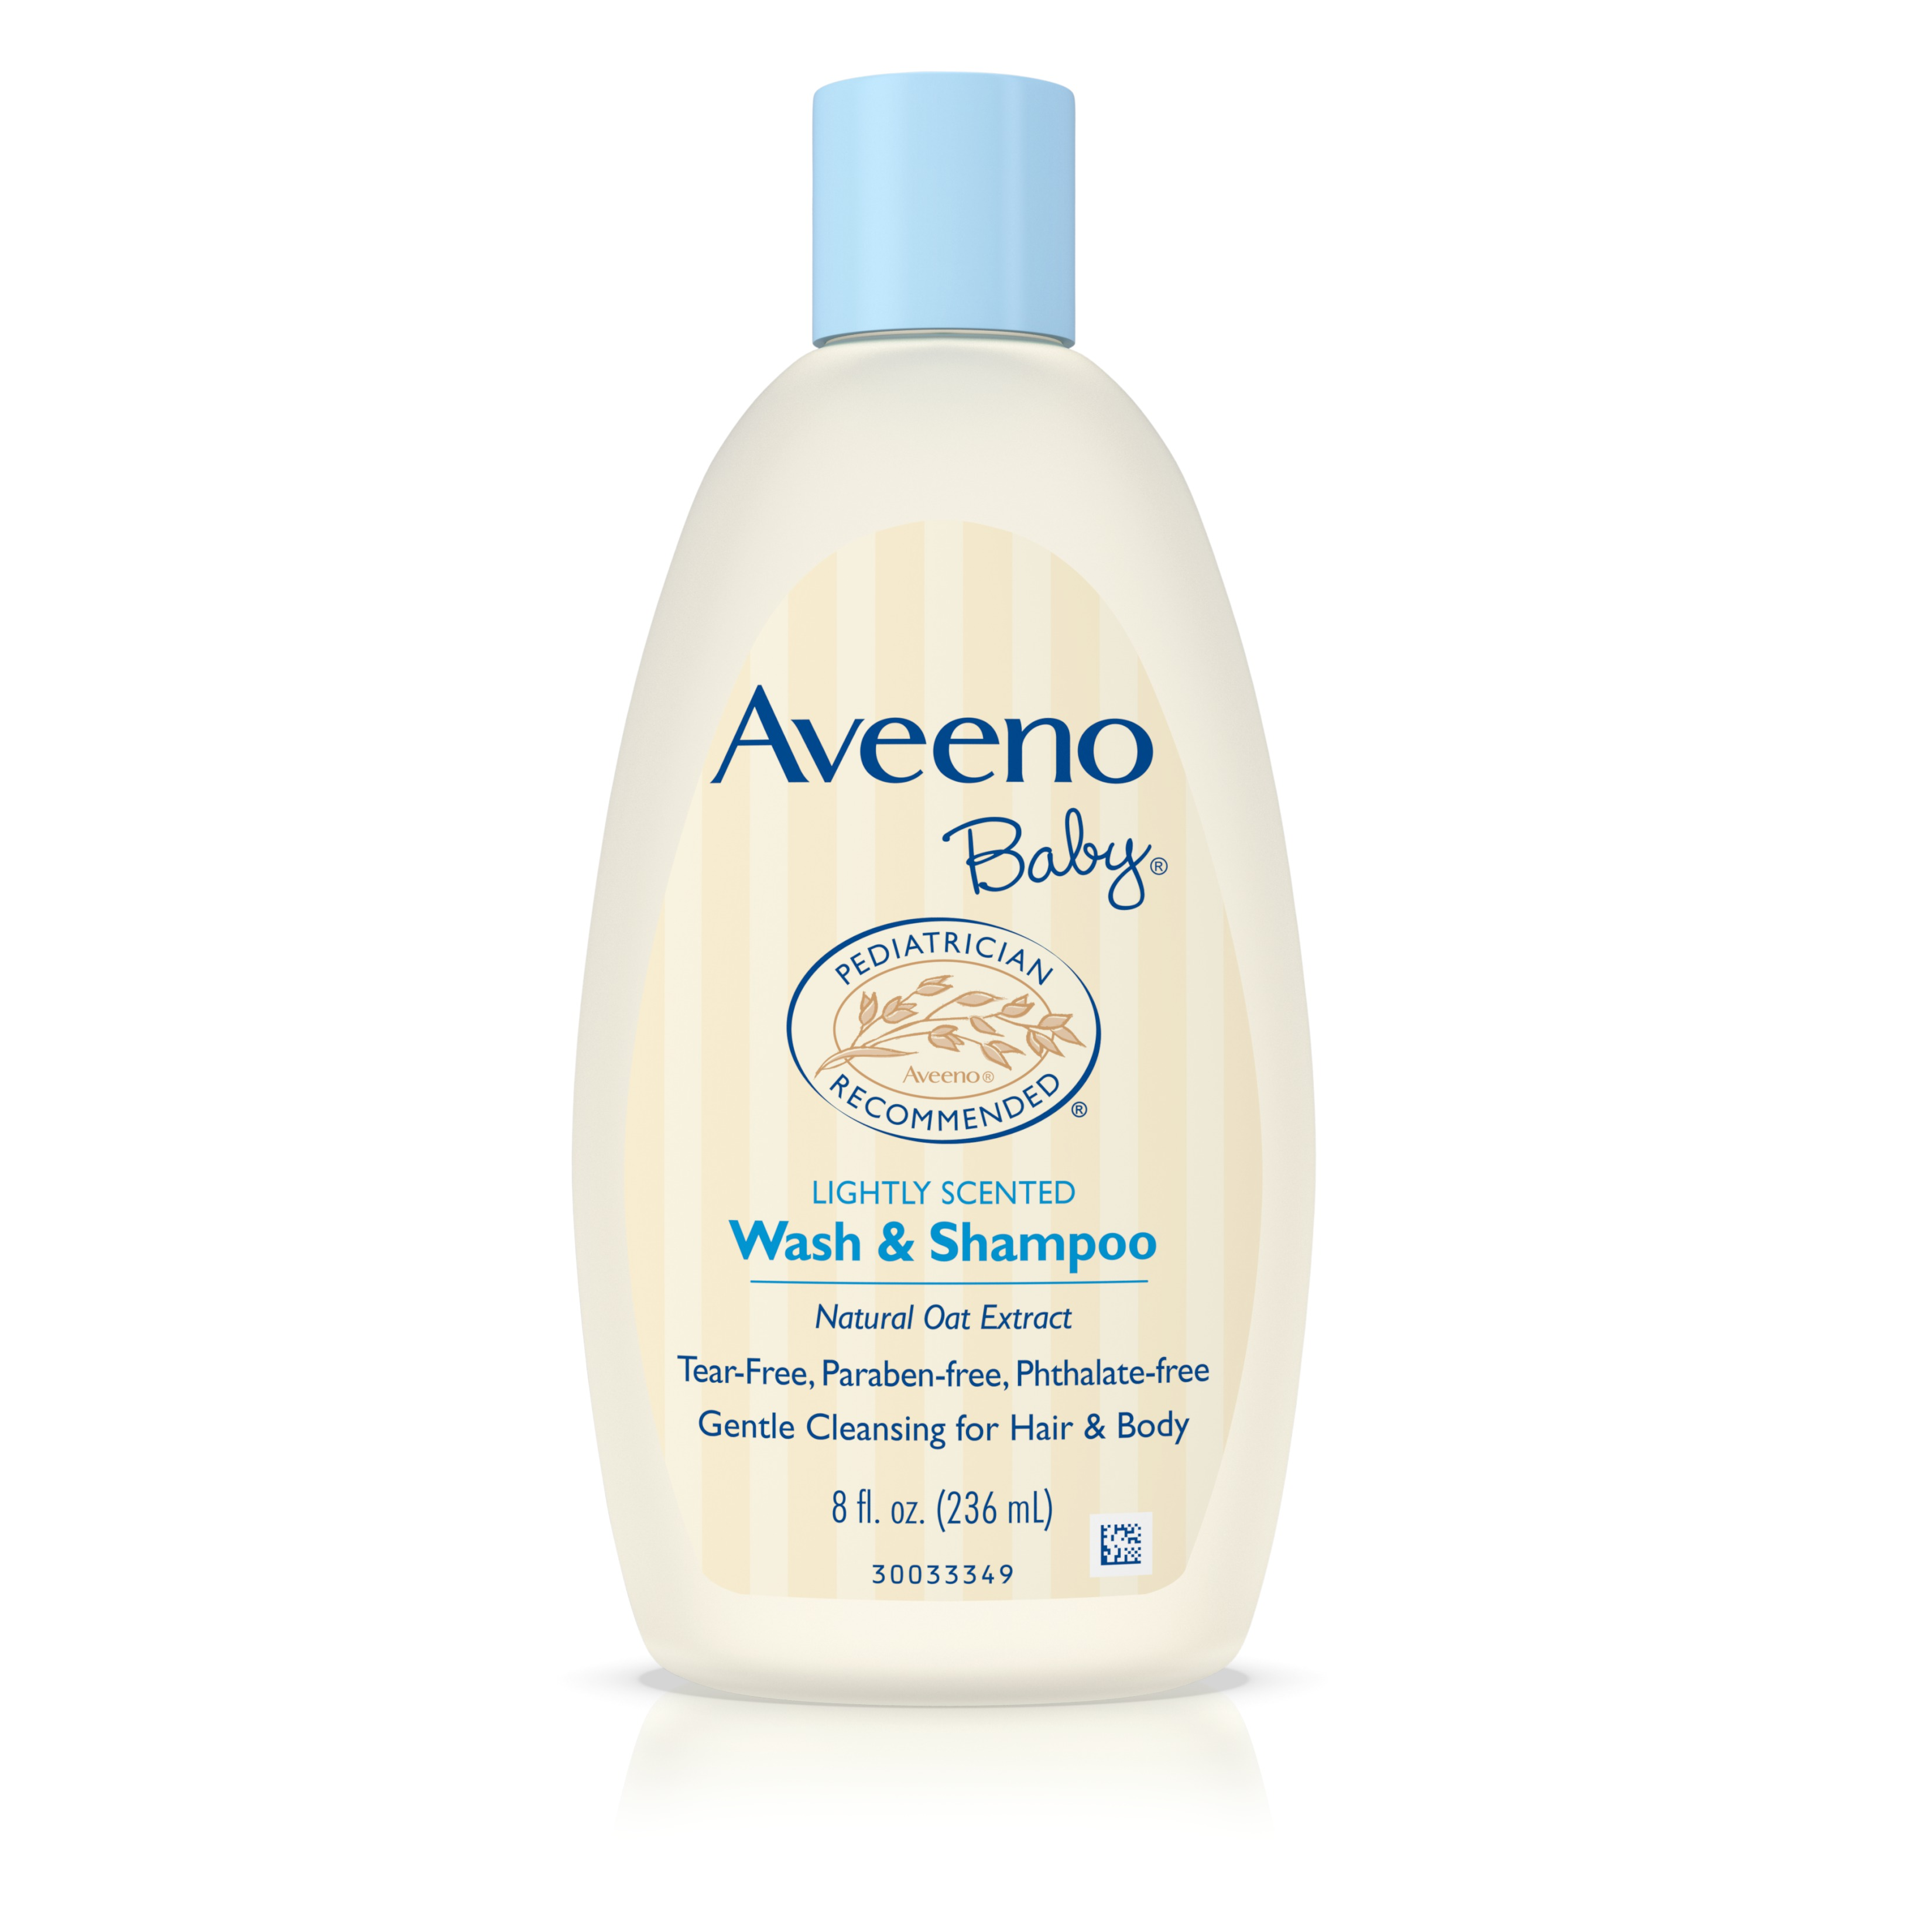 Aveeno Baby Wash & Shampoo For Hair & Body, Tear-Free, 8 Oz. - Walmart.com